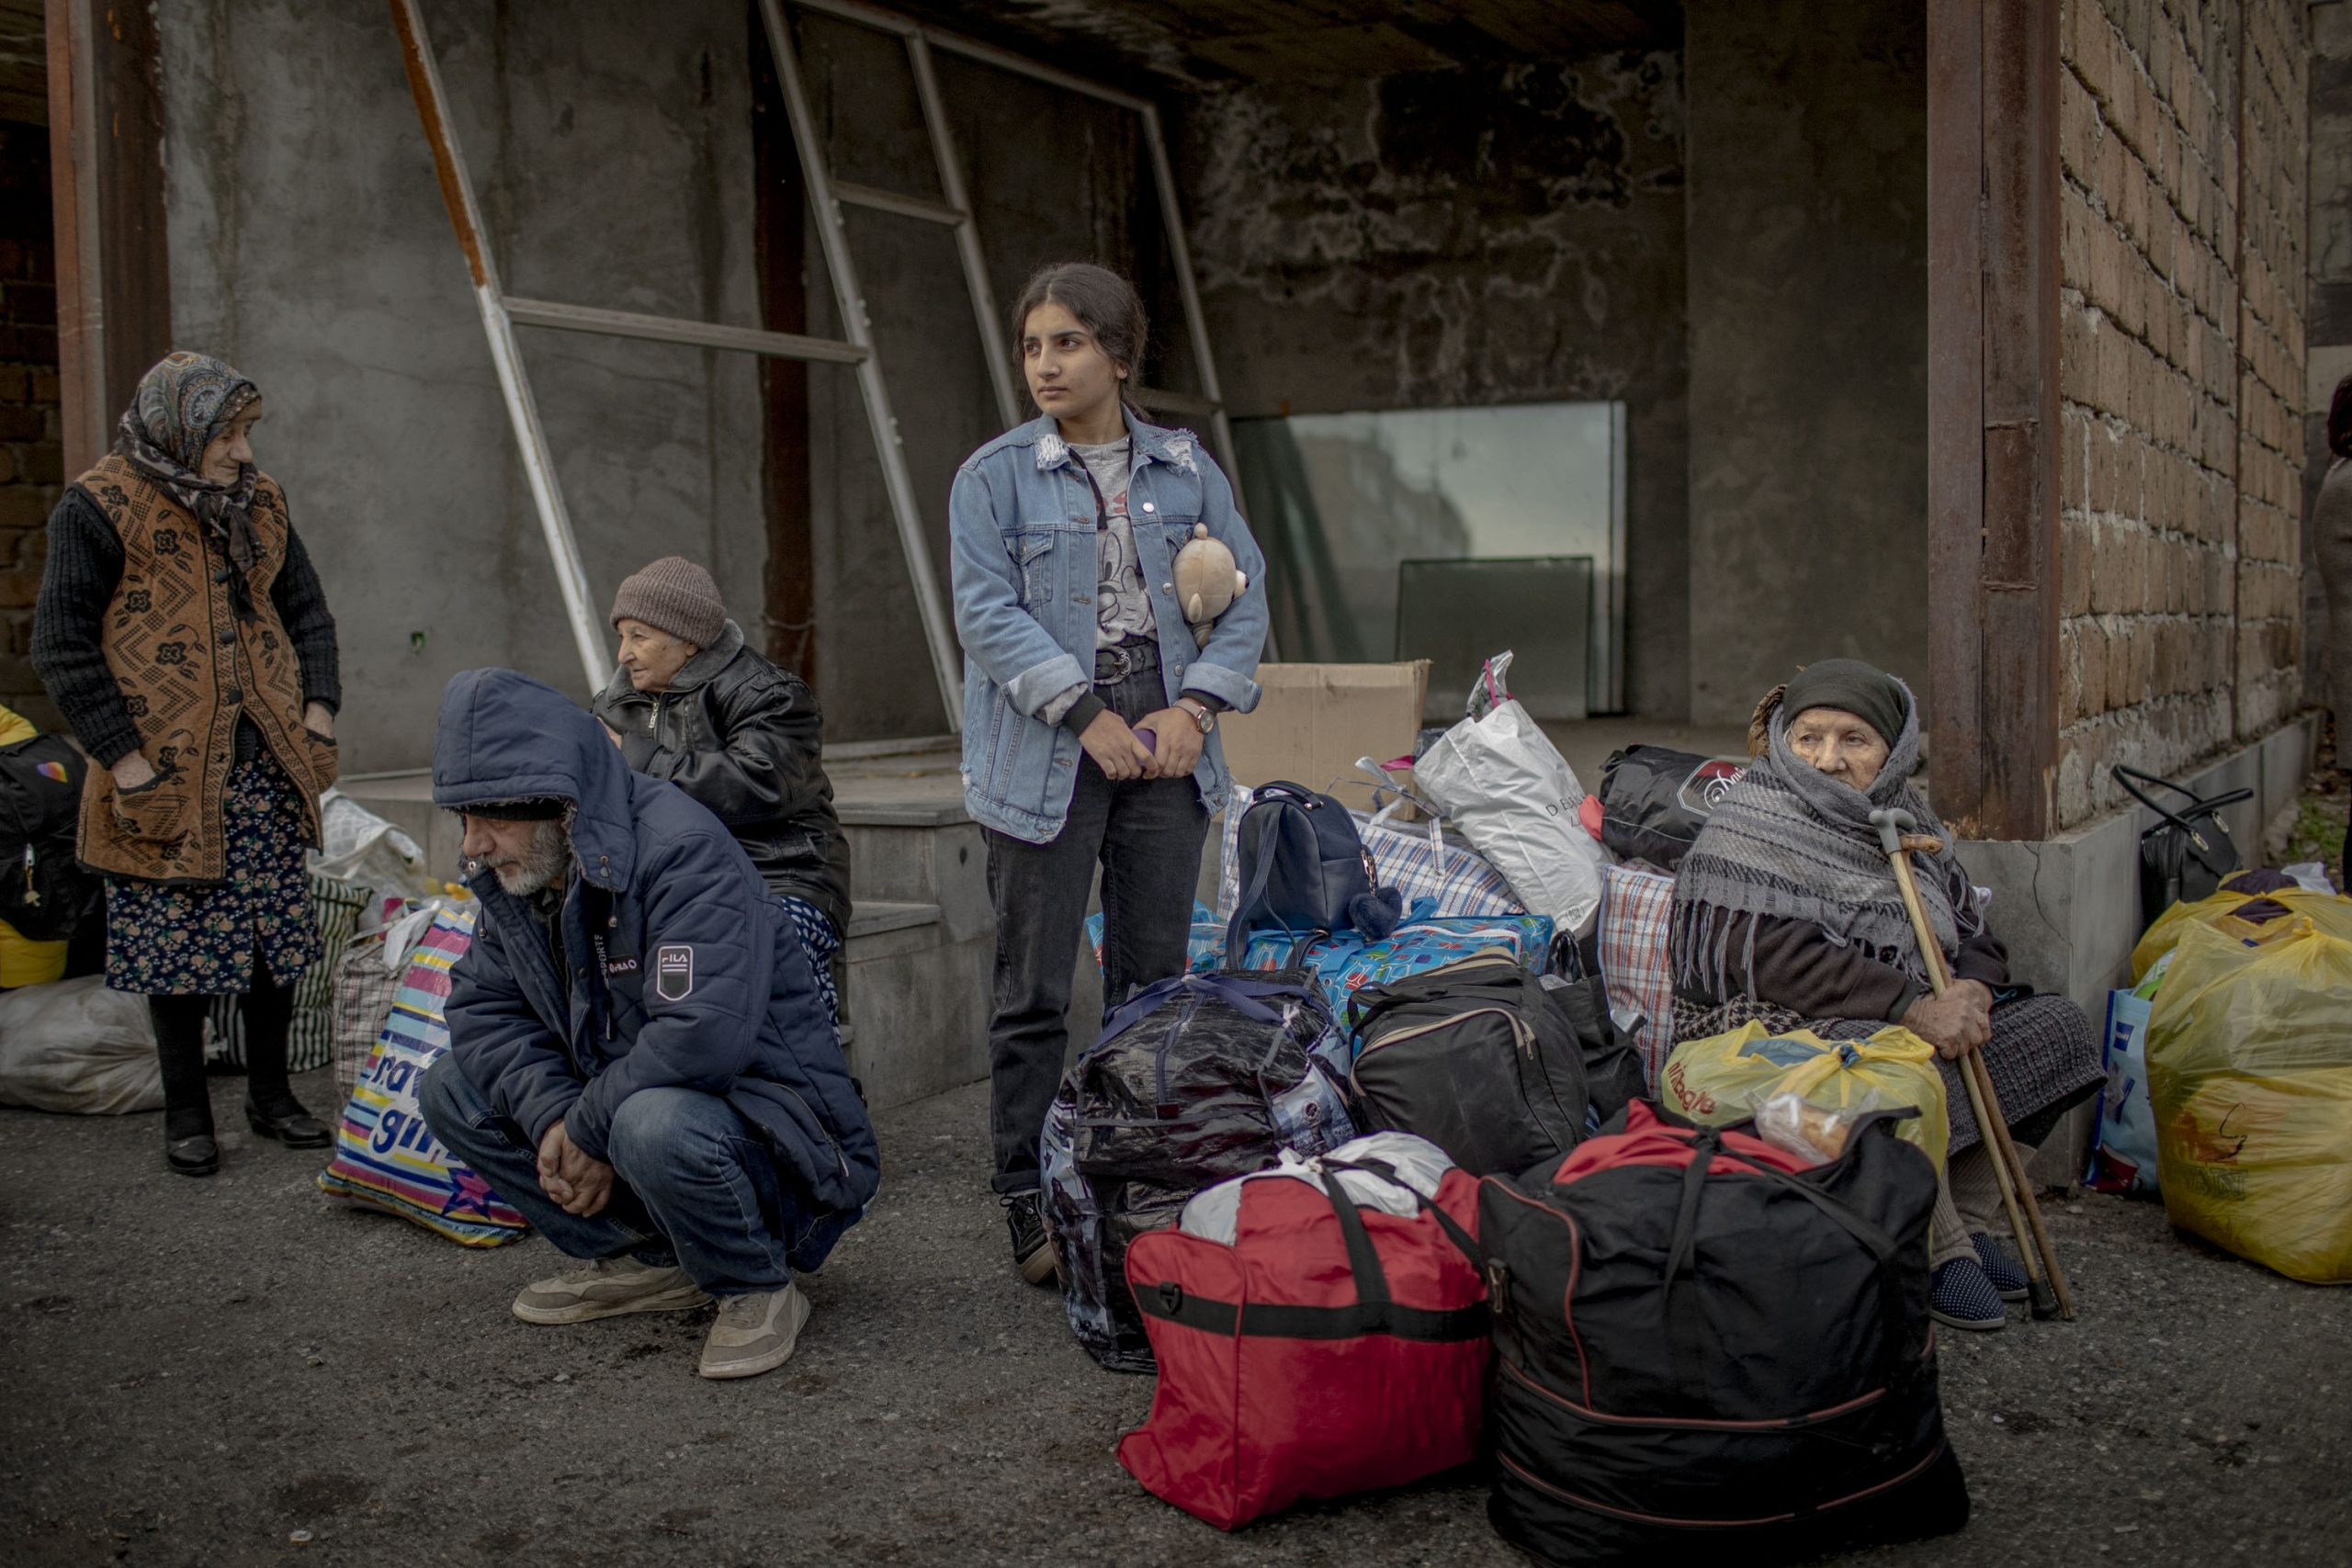 Families from Nagorno-Karabakh wait for busses to Stepanakert, in Yerevan, Armenia, on November 19, 2020. These families found refuge in Armenia during the days of the war and are now returning to their home towns and villages in Nagorno-Karabakh.